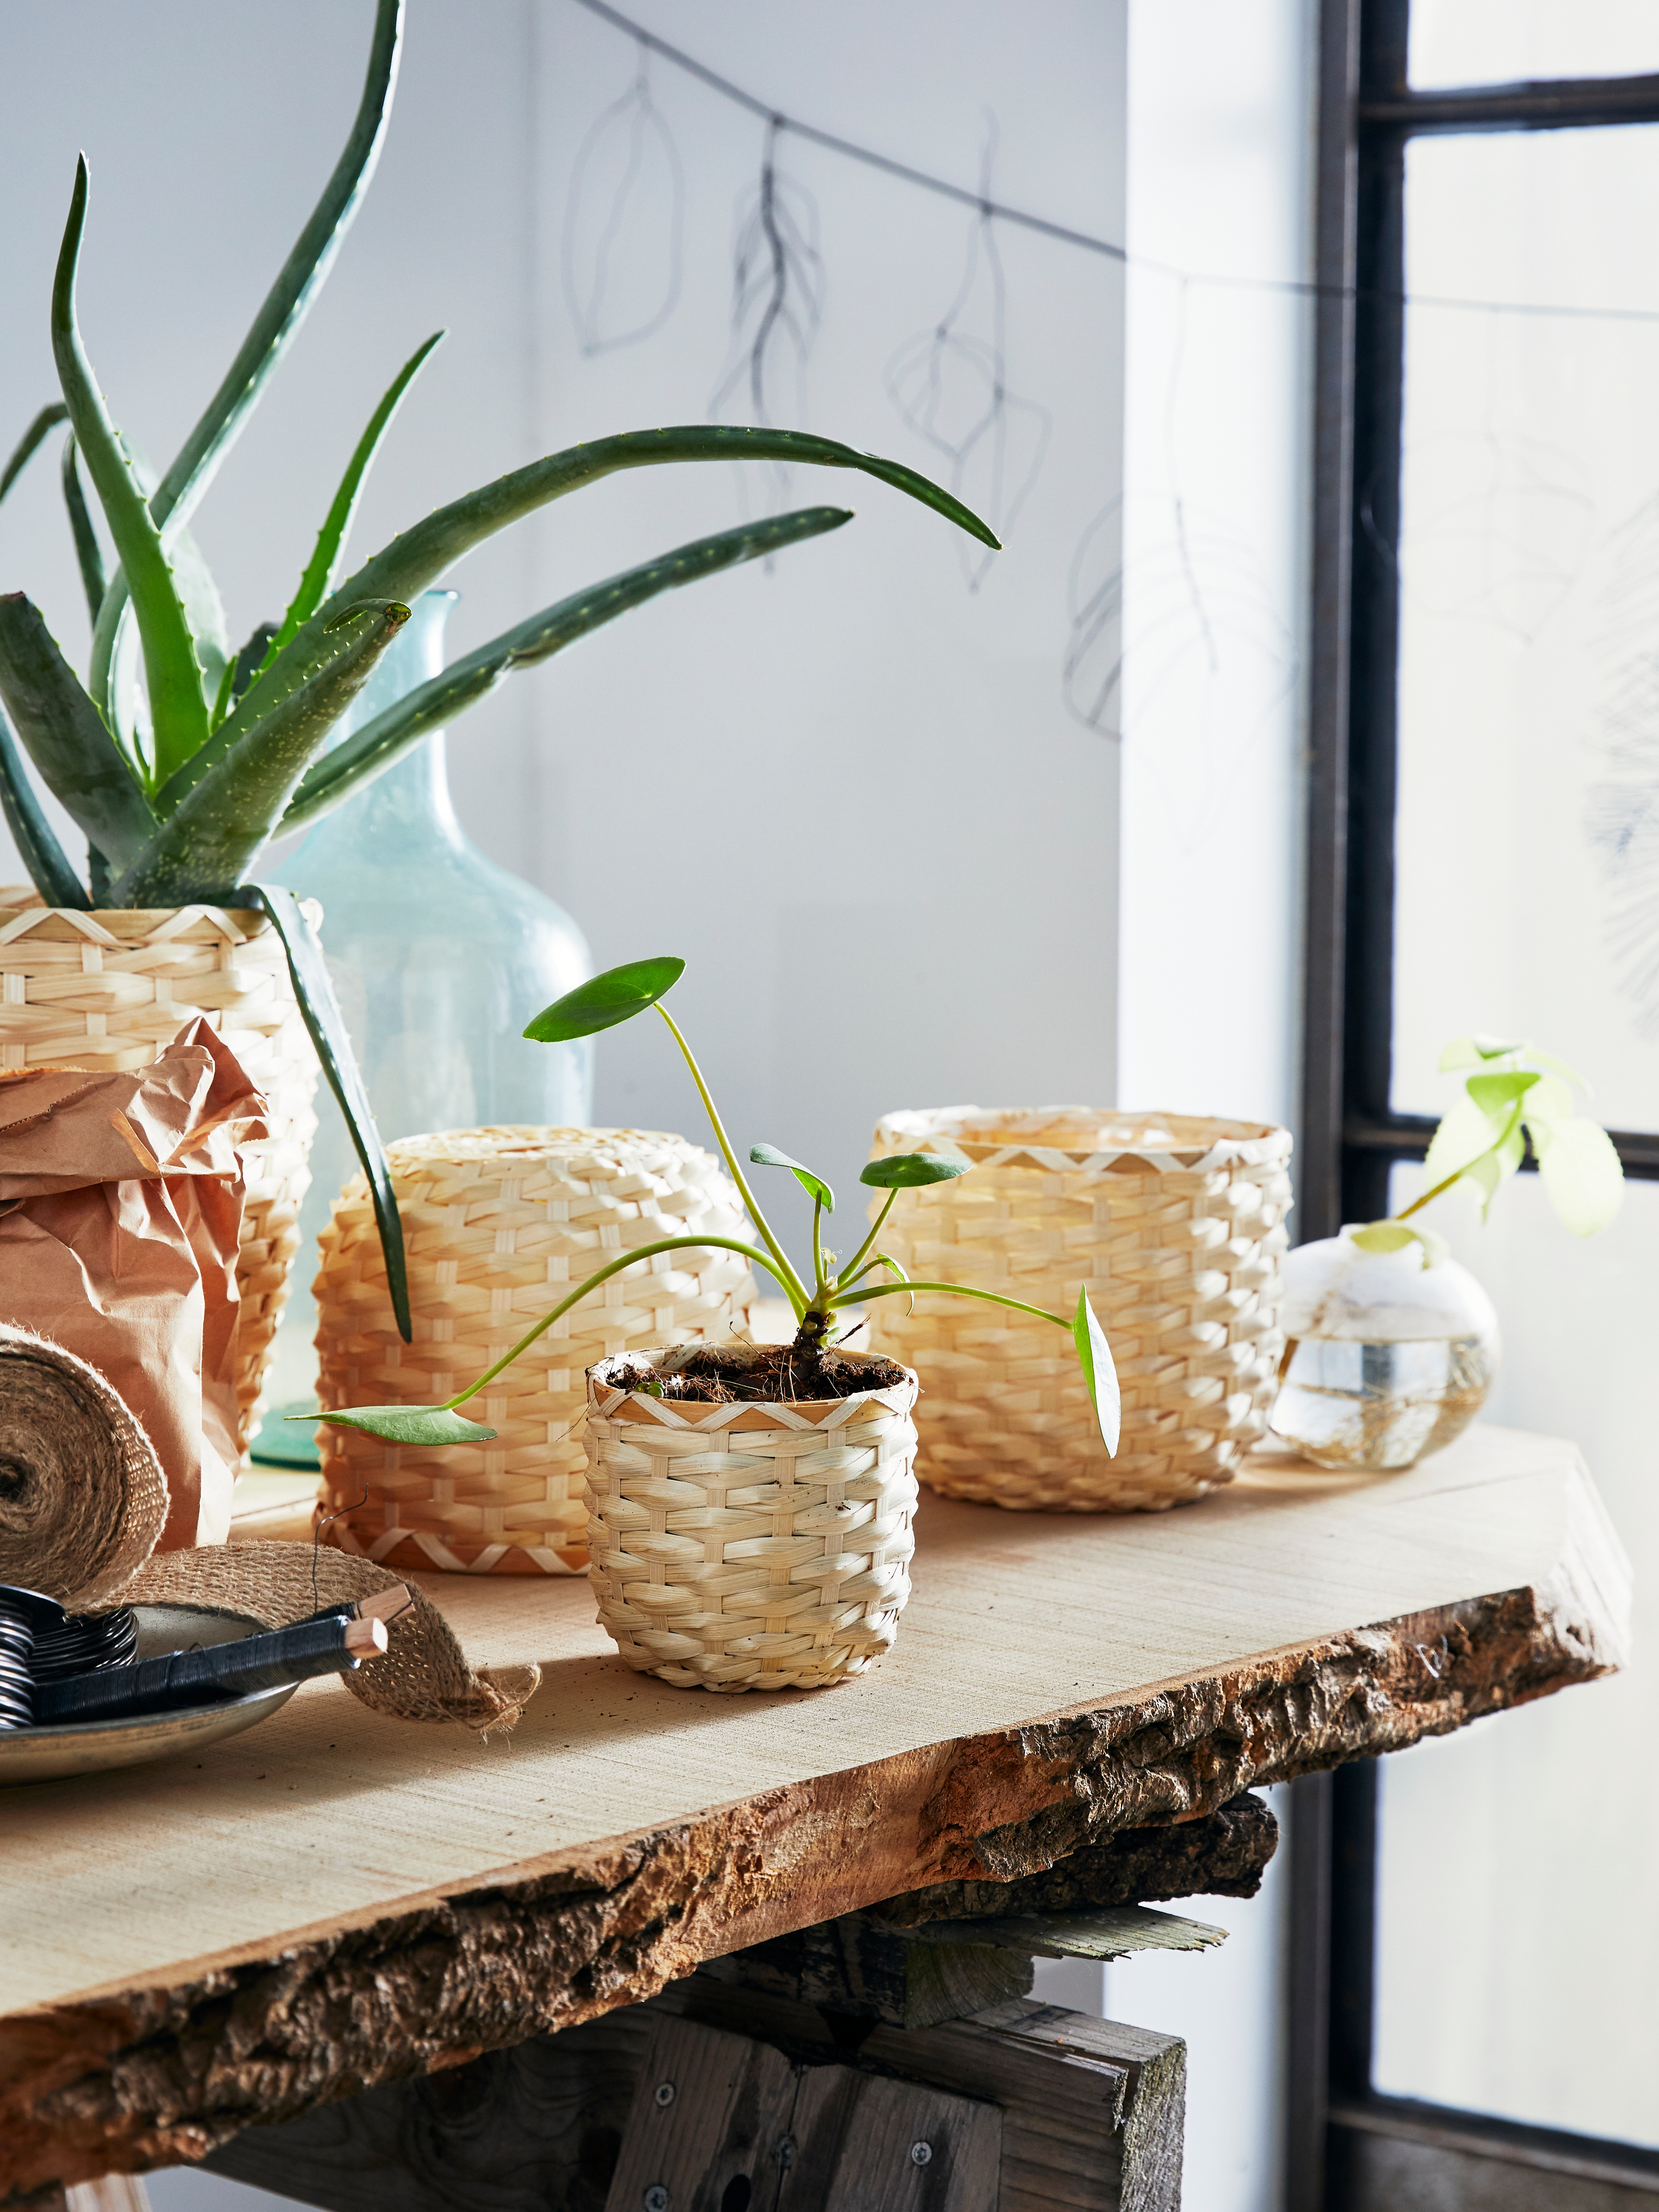 Handmade round KAFFEBÖNA bamboo plant pots with green plants on a wooden table, in front of a sunny window.